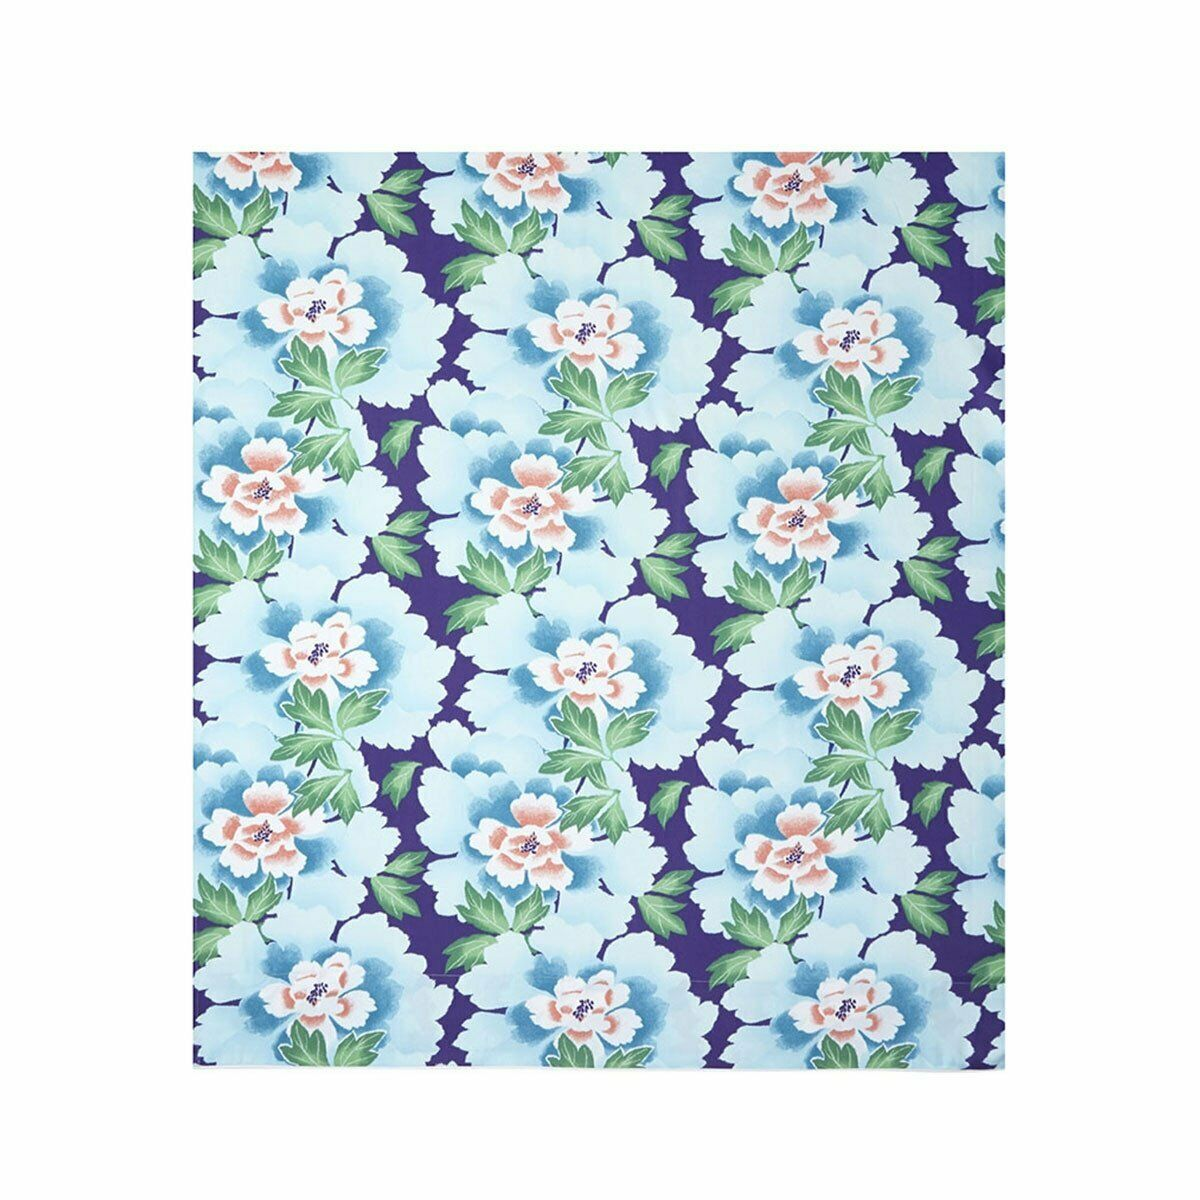 INDONESIE BY KENZO - COTTON SATEEN FLAT SHEET IN FLORAL PRINT